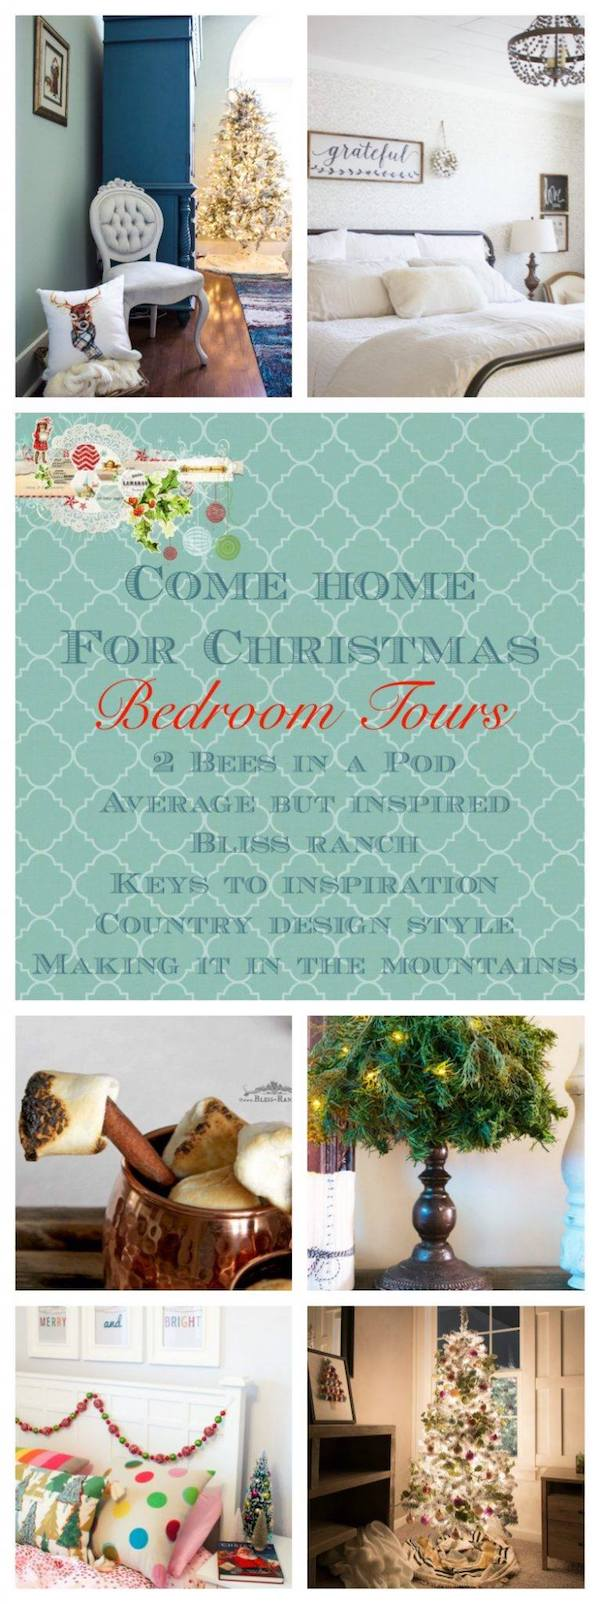 Christmas Bedroom Tours #ChristmasHomeTour #ChristmasDecor